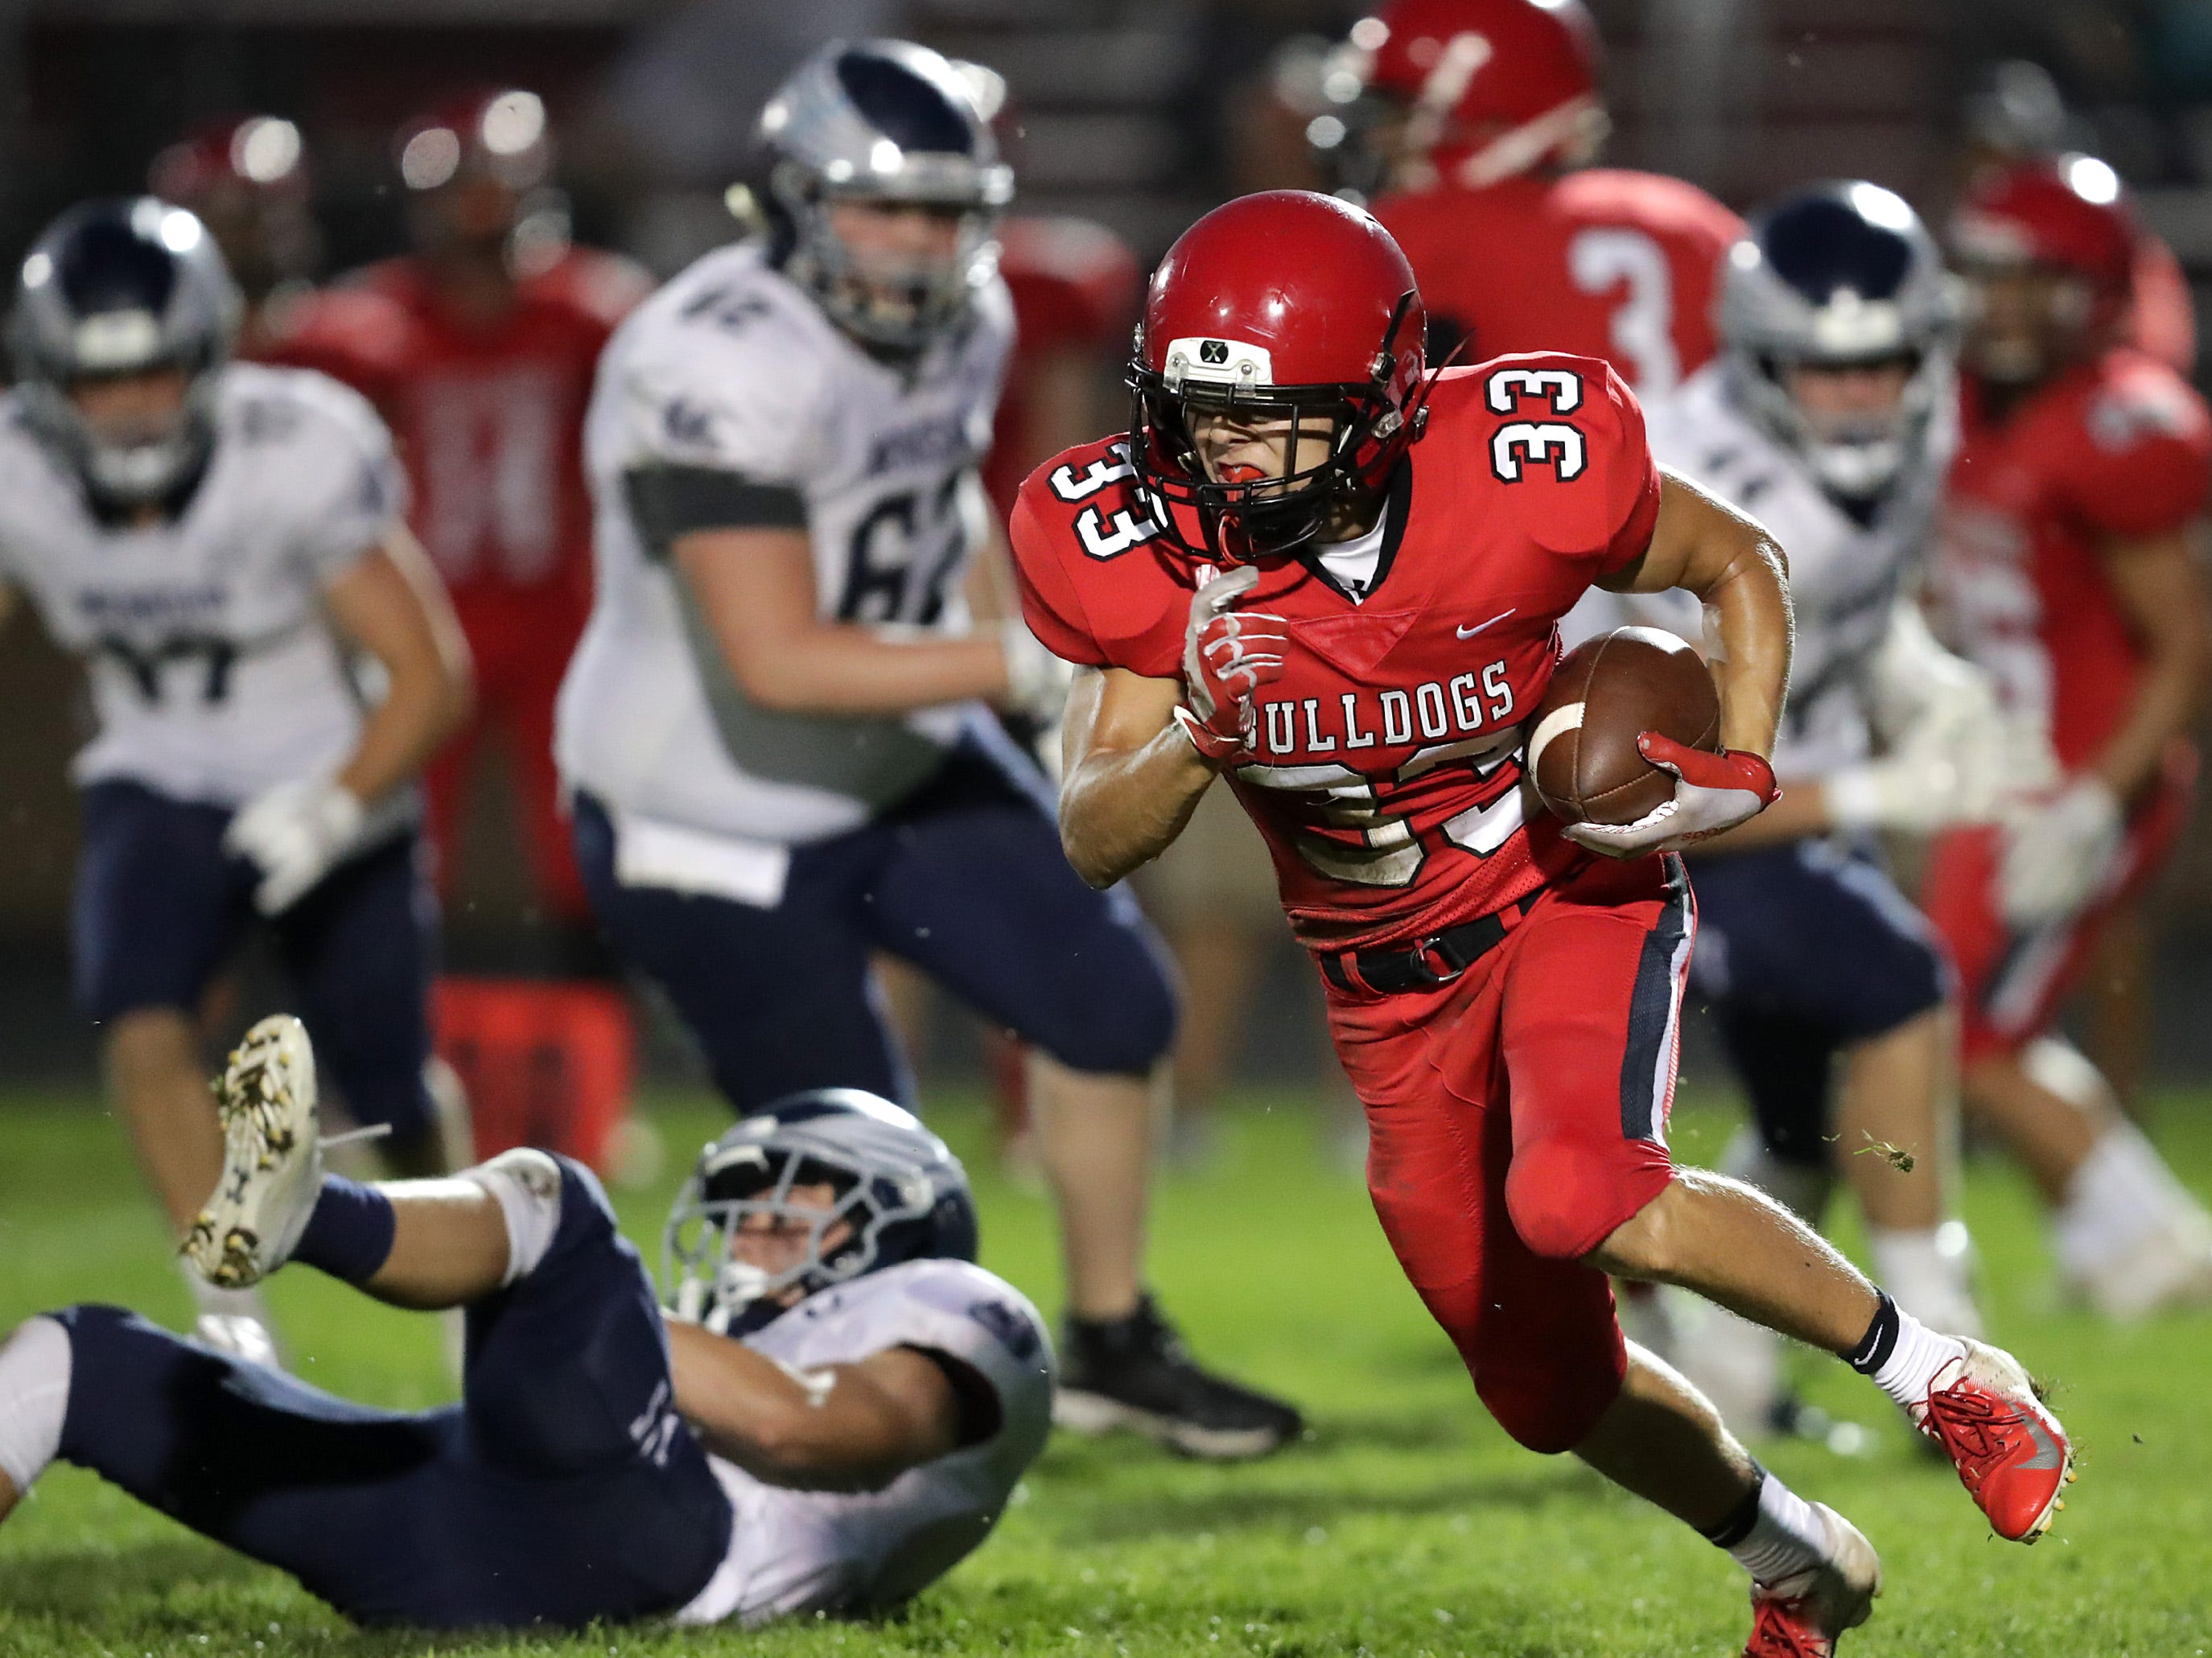 New London High School's #33 Vincent Winkler rushes against Menasha High School during their football game on Friday, September 14, 2018, New London, Wis. Menasha defeated the Bulldogs 34 to 28.Wm. Glasheen/USA TODAY NETWORK-Wisconsin